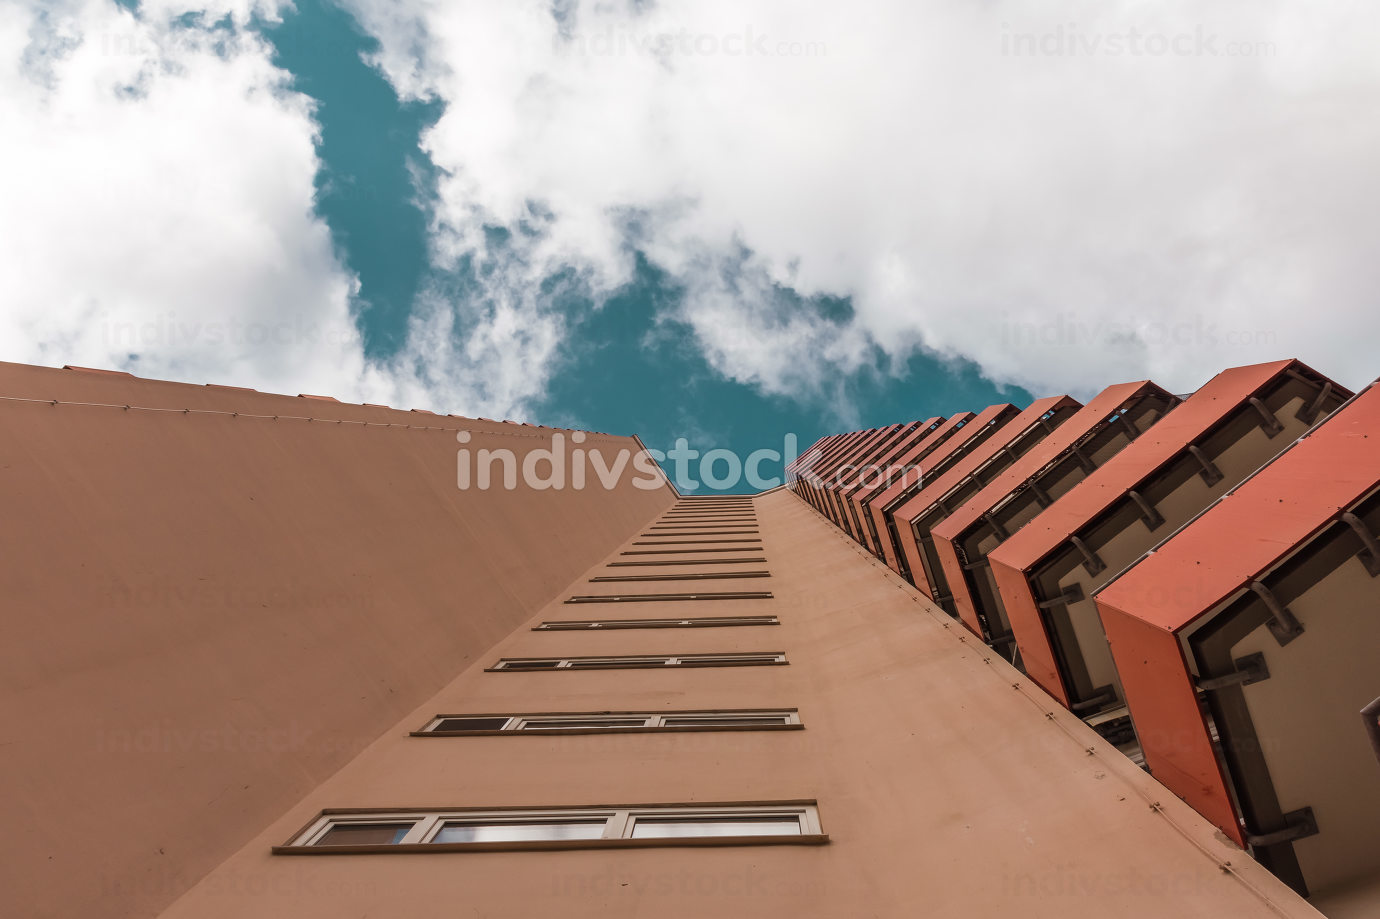 a high-rise with small red balkons with a view from below